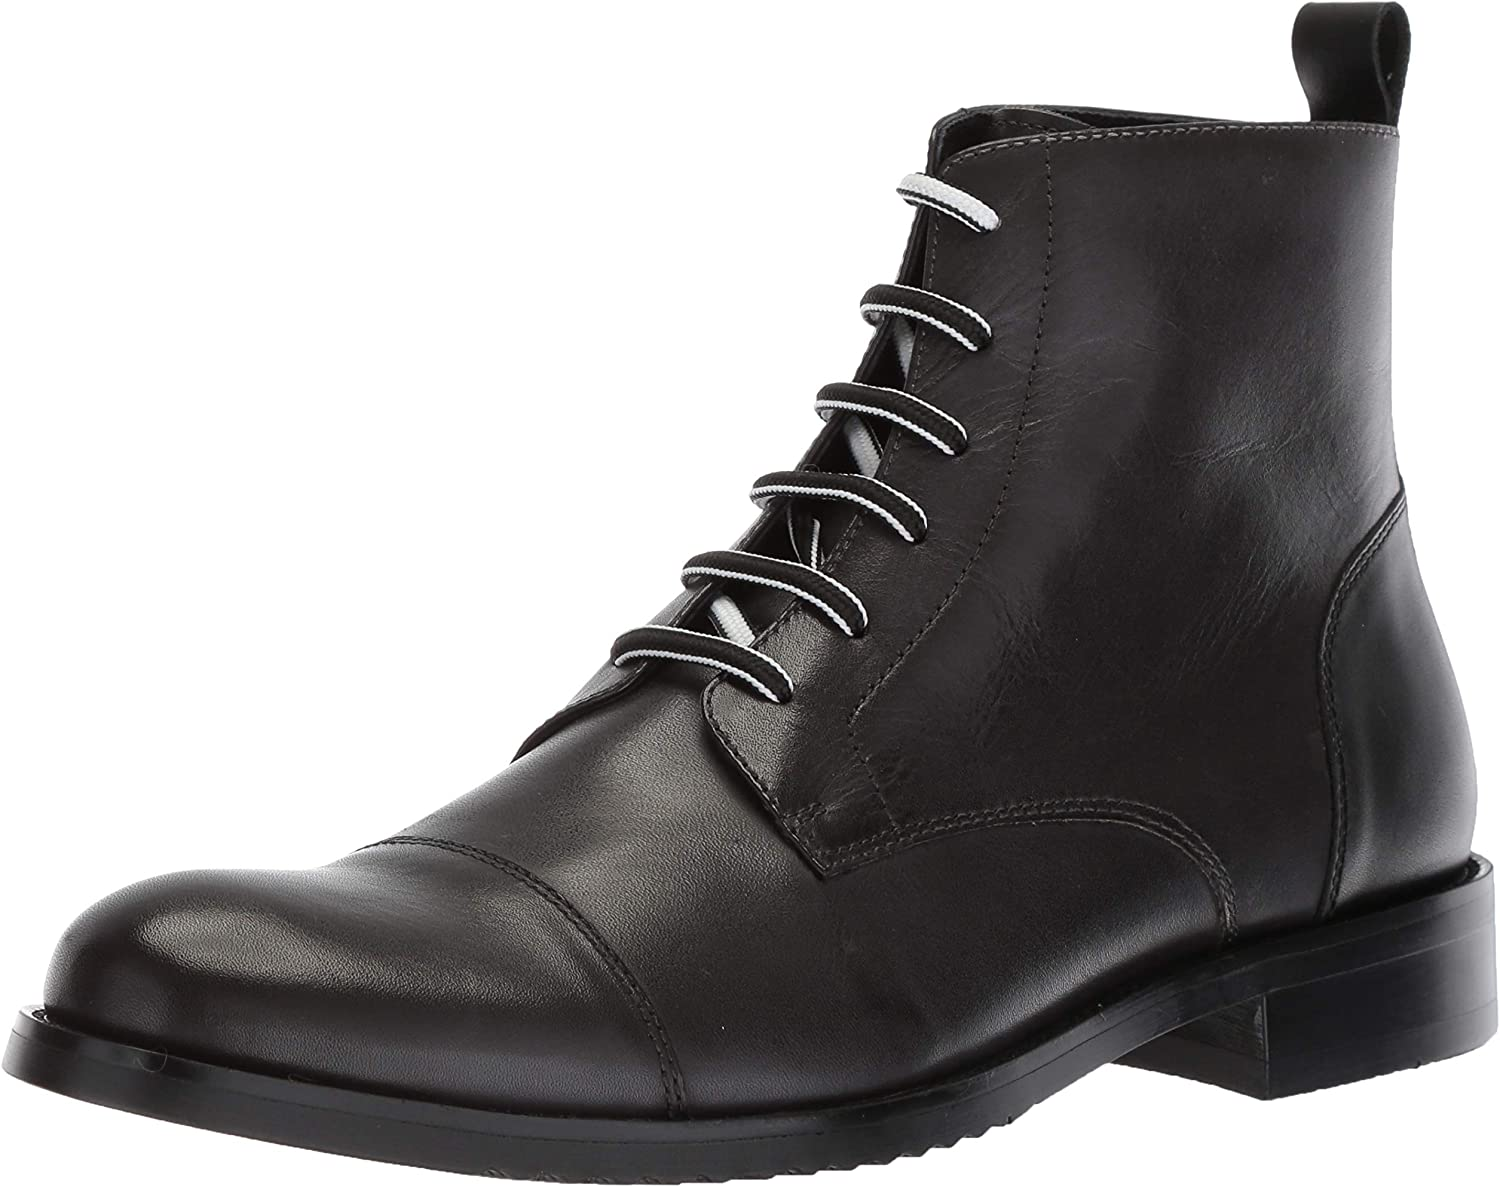 Zanzara Men's Lombardo Fashion Boot